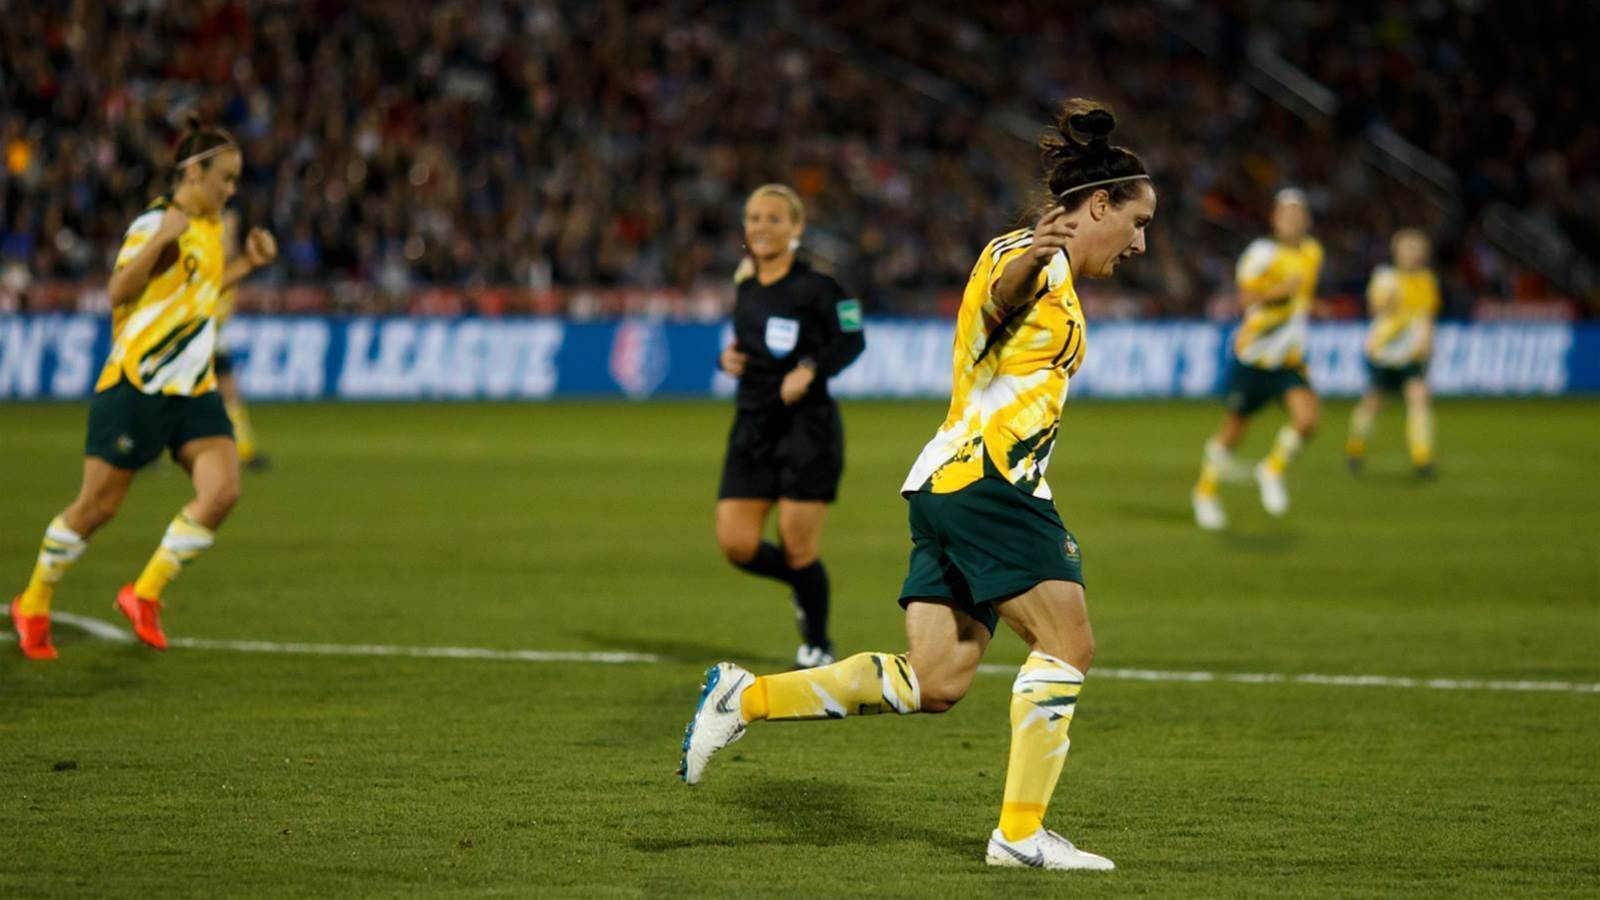 In pics: Matildas vs the USA